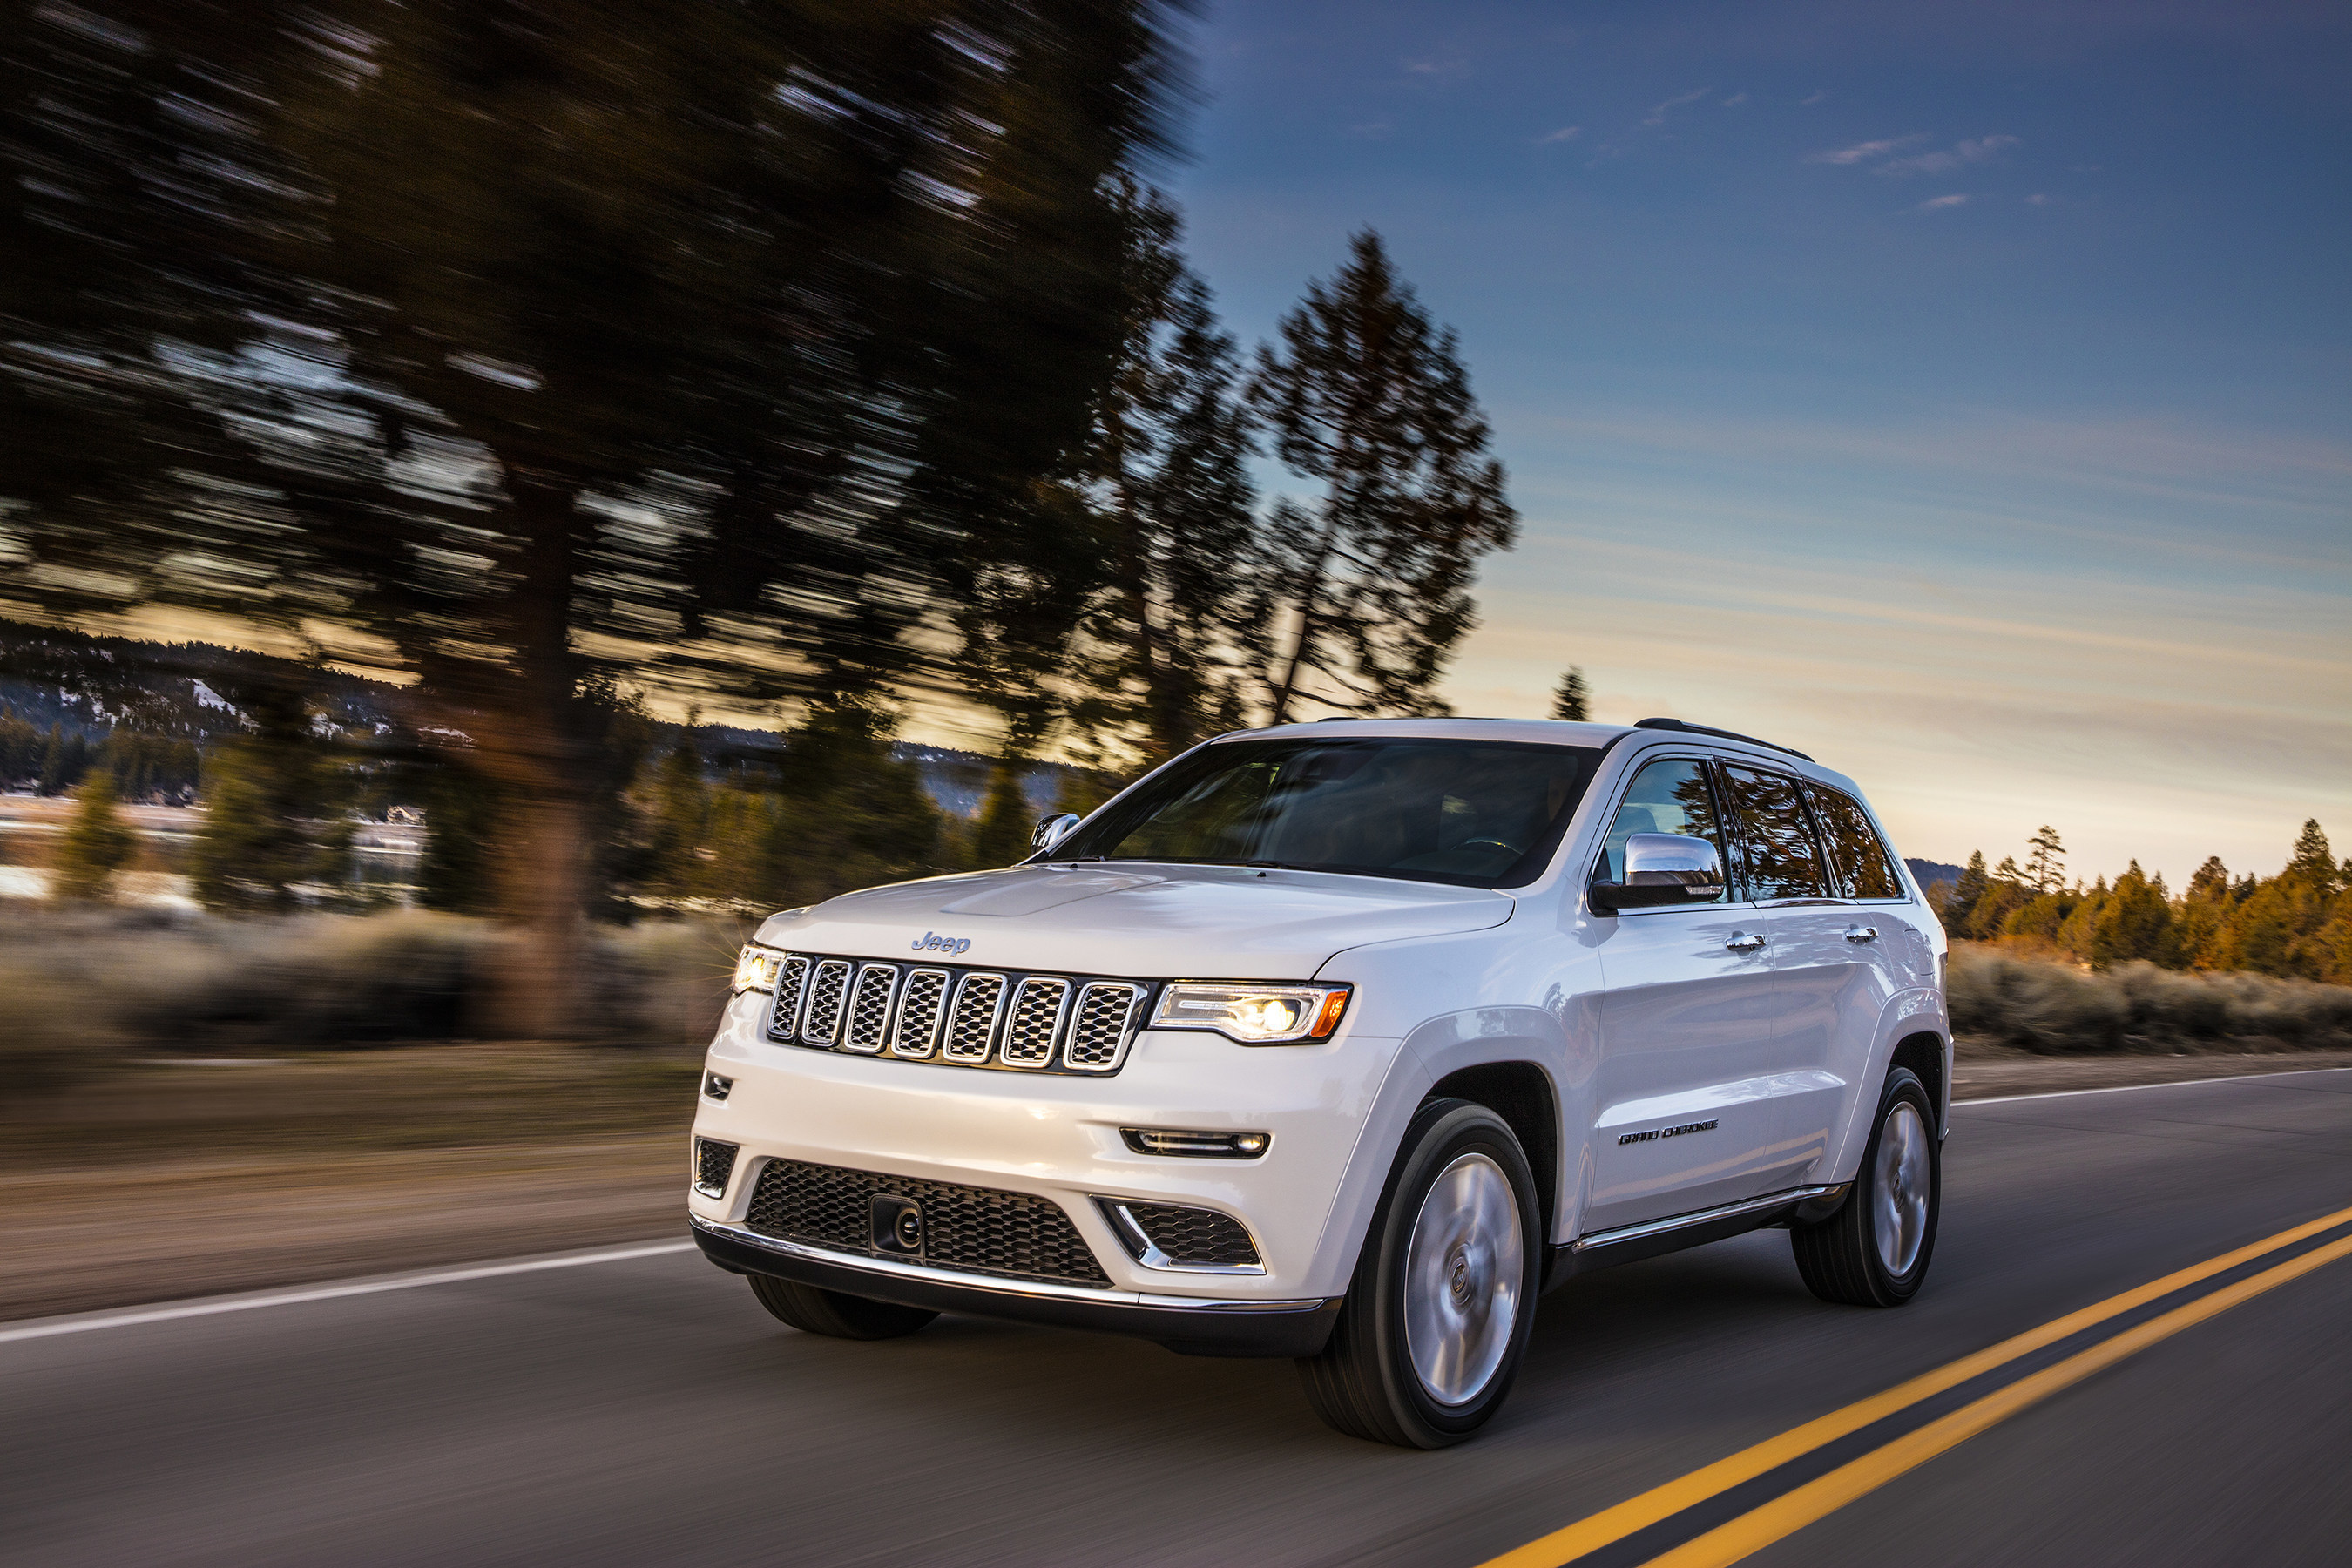 2017 Jeep Grand Cherokee 4x4 Earned Five Star Rating In Each Of Three Distinct Crash